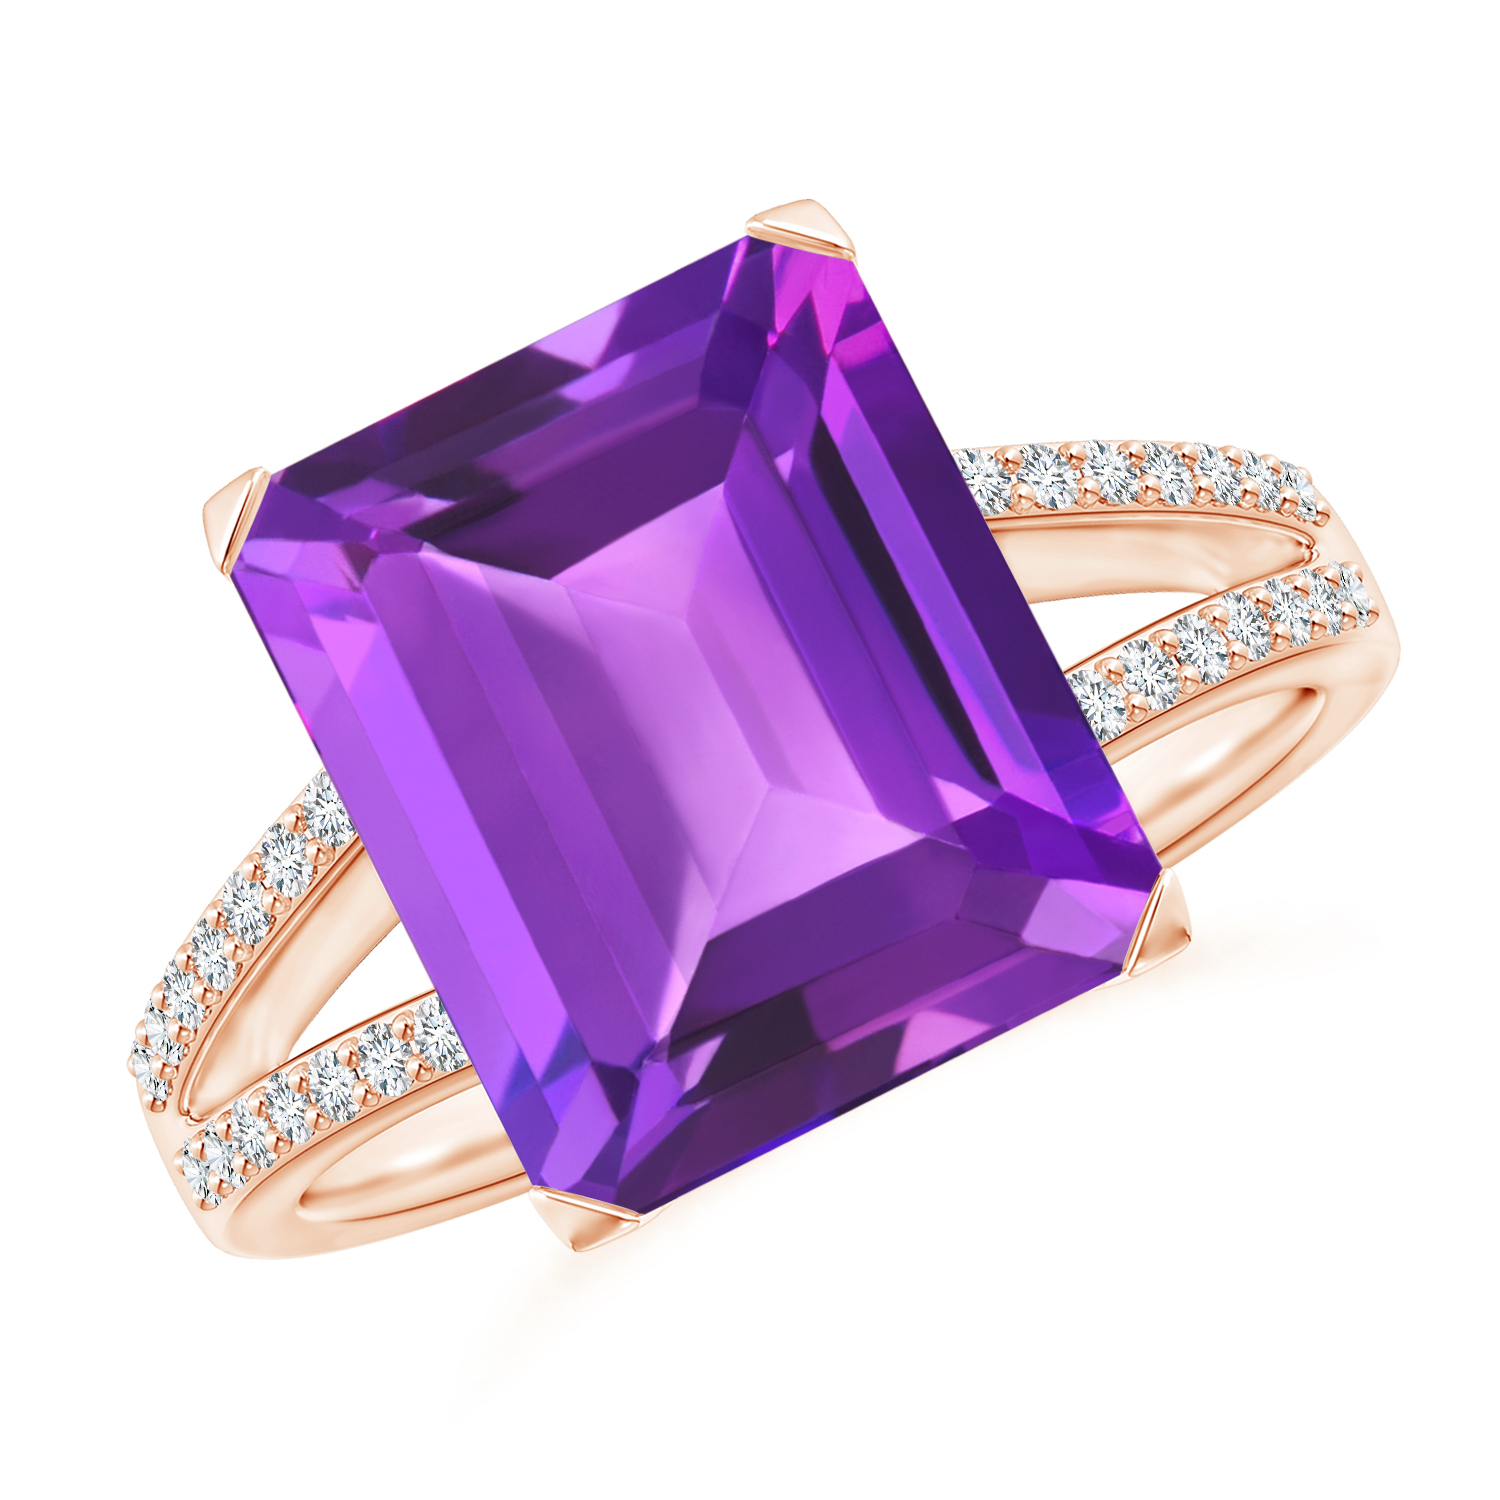 Emerald Cut Amethyst Cocktail Ring with Diamond Accents - Angara.com